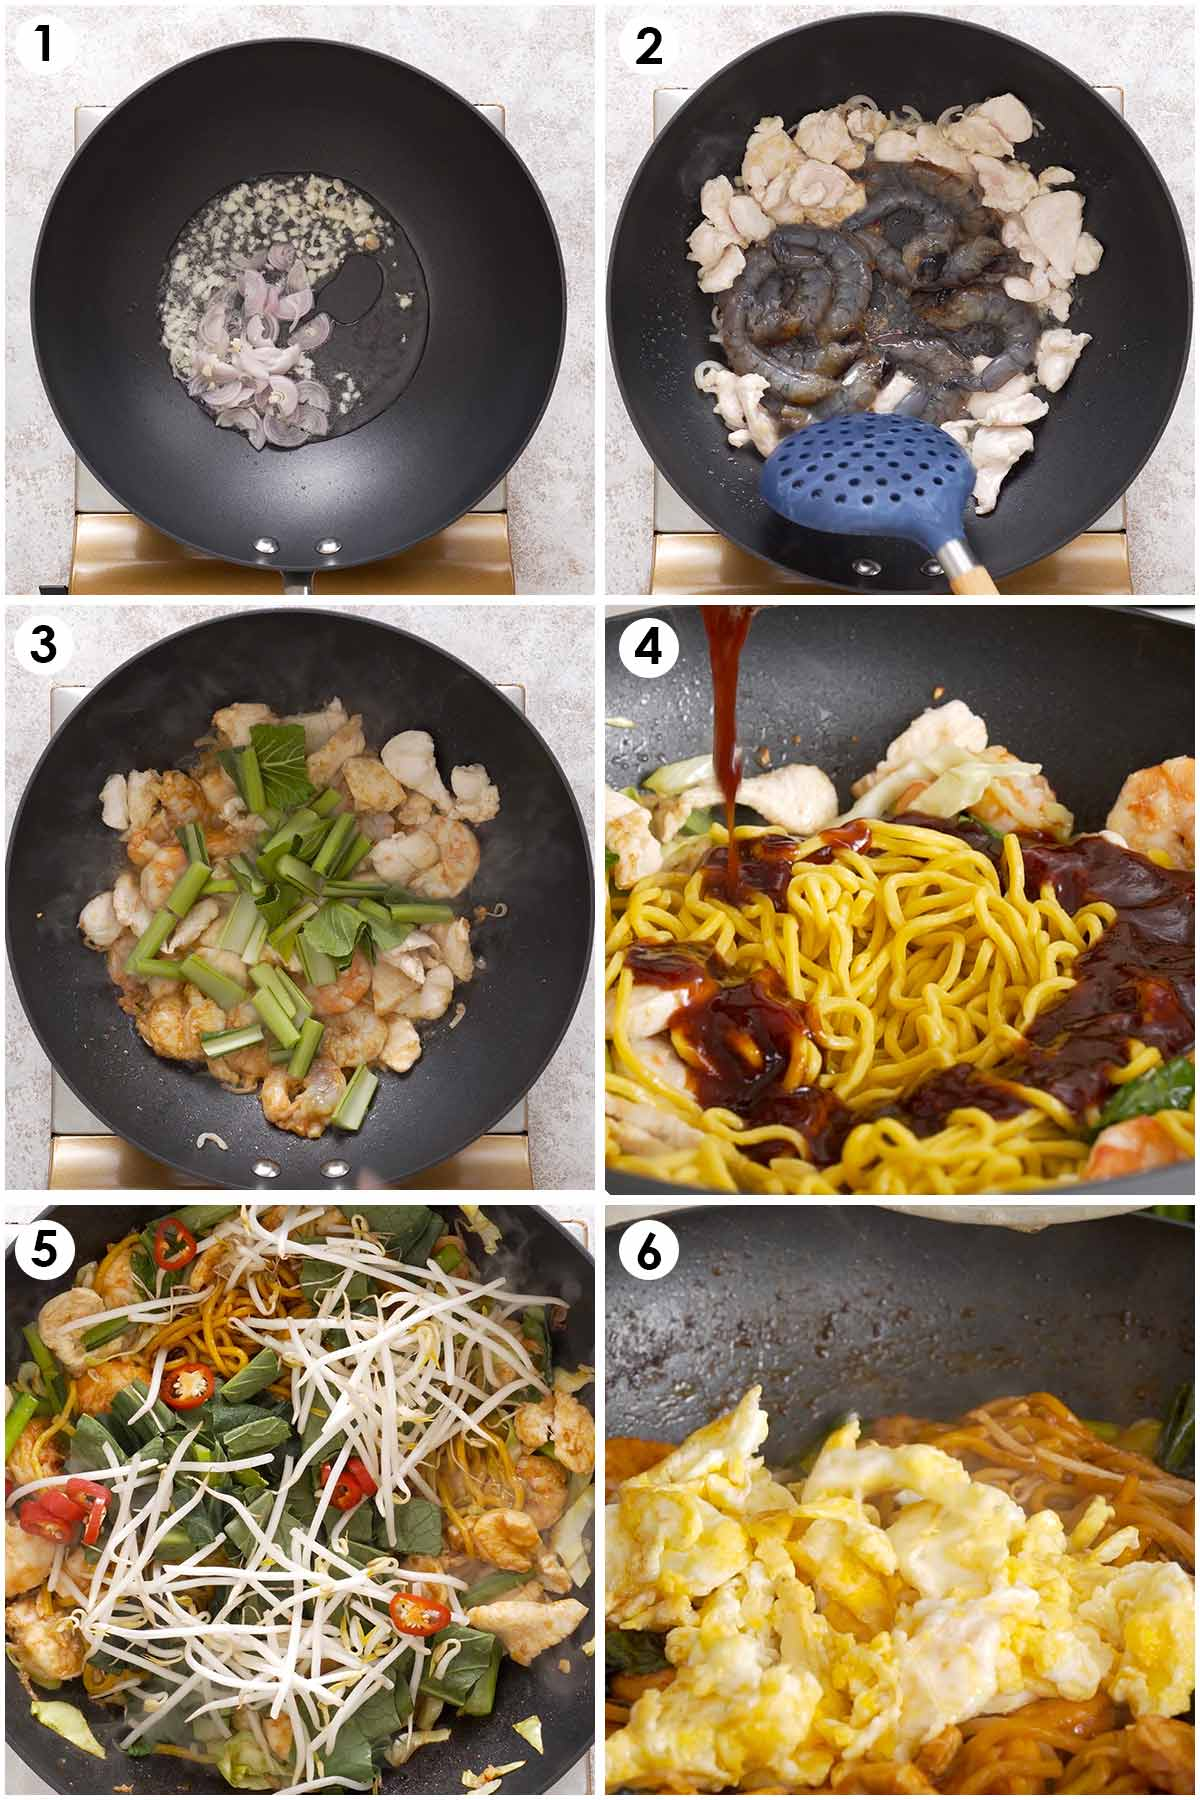 6 image collage showing how to make Malaysian stir fry noodles.